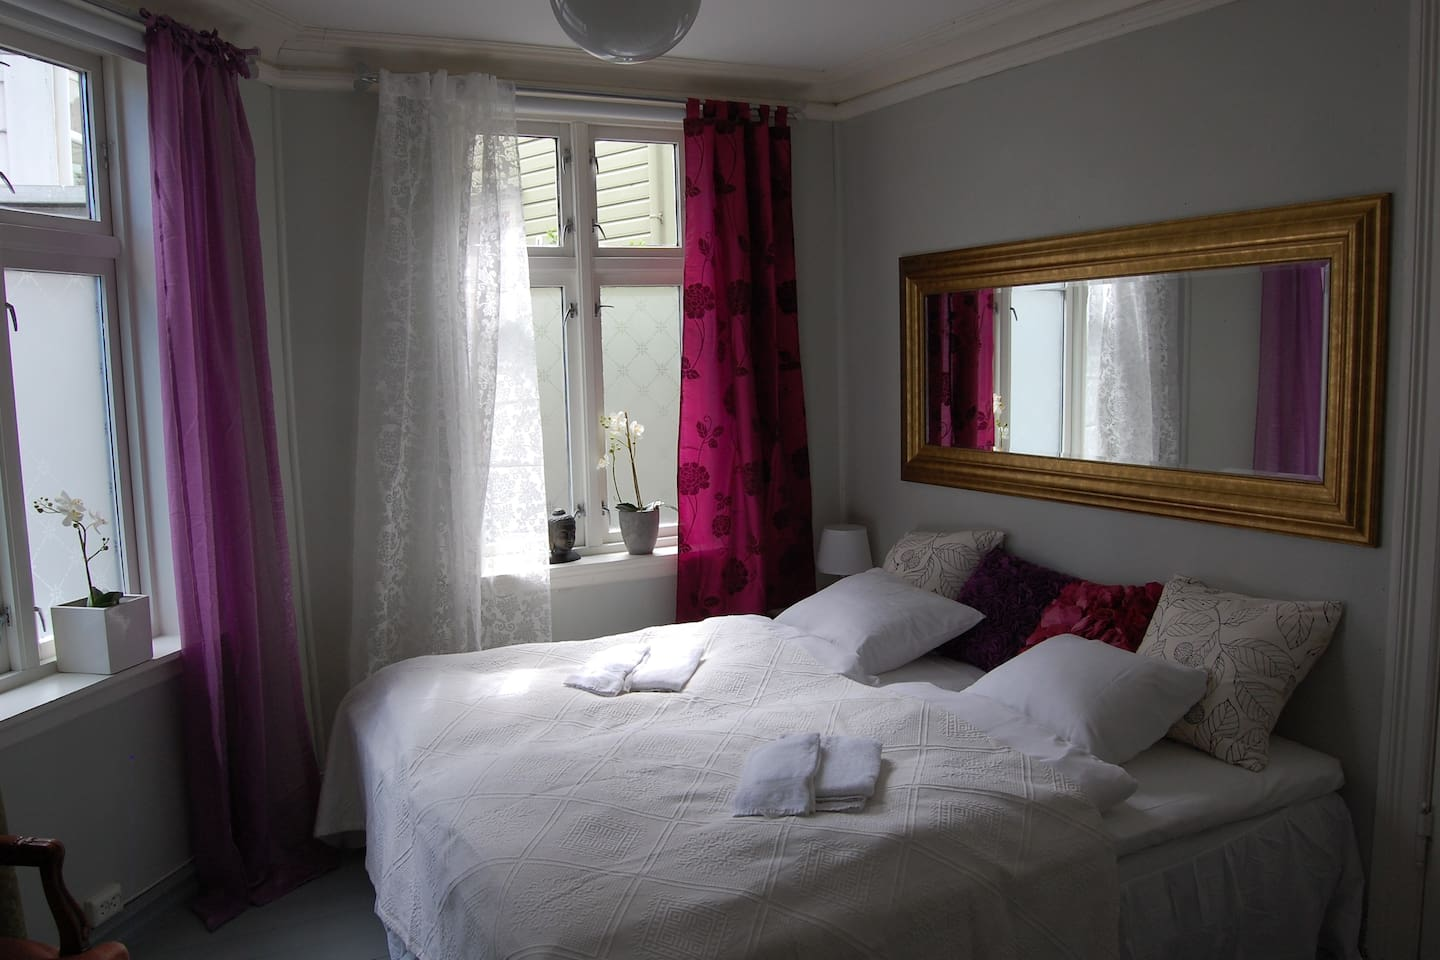 Room S (1 of 3 double rooms)